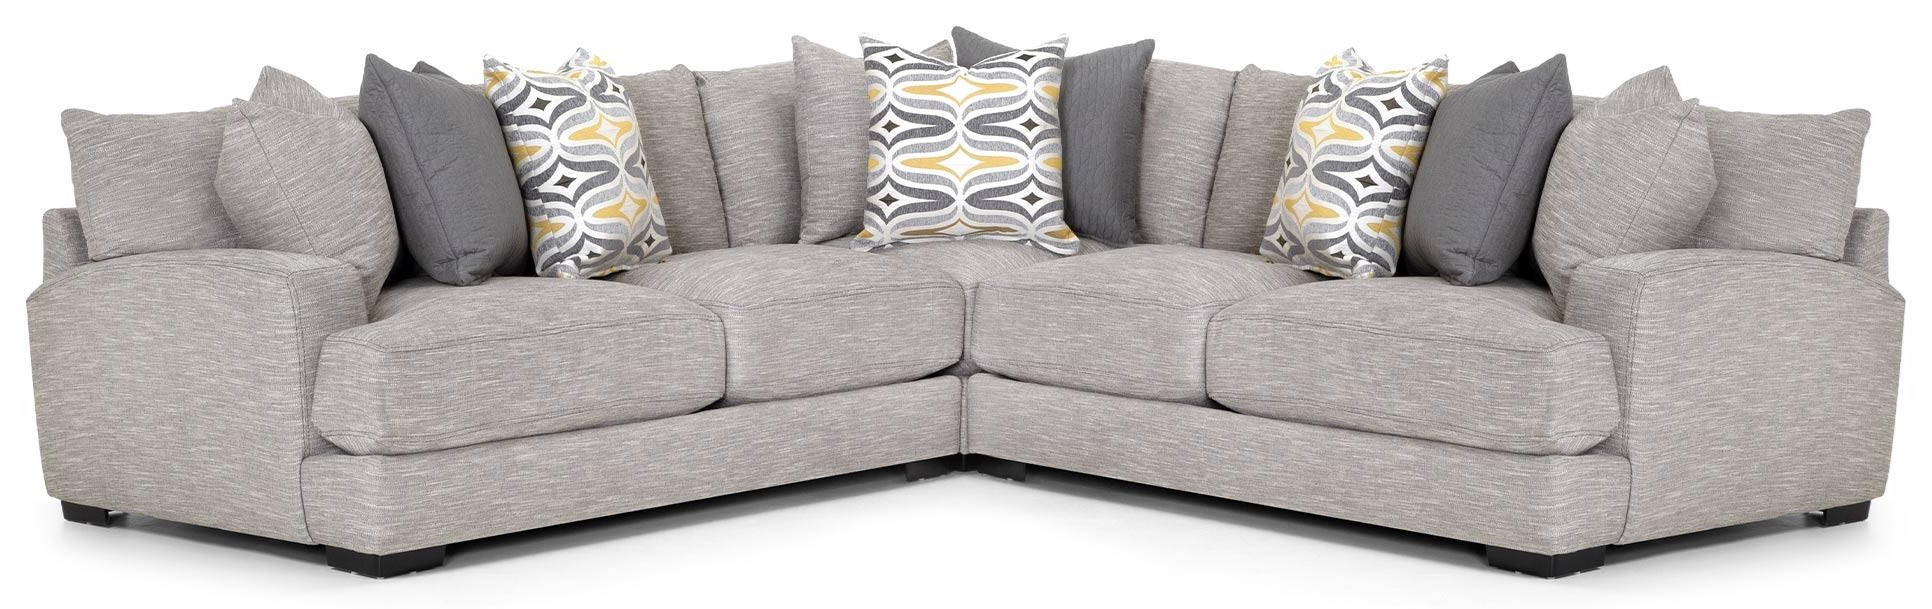 Barton Three Piece Sectional at Bennett's Furniture and Mattresses